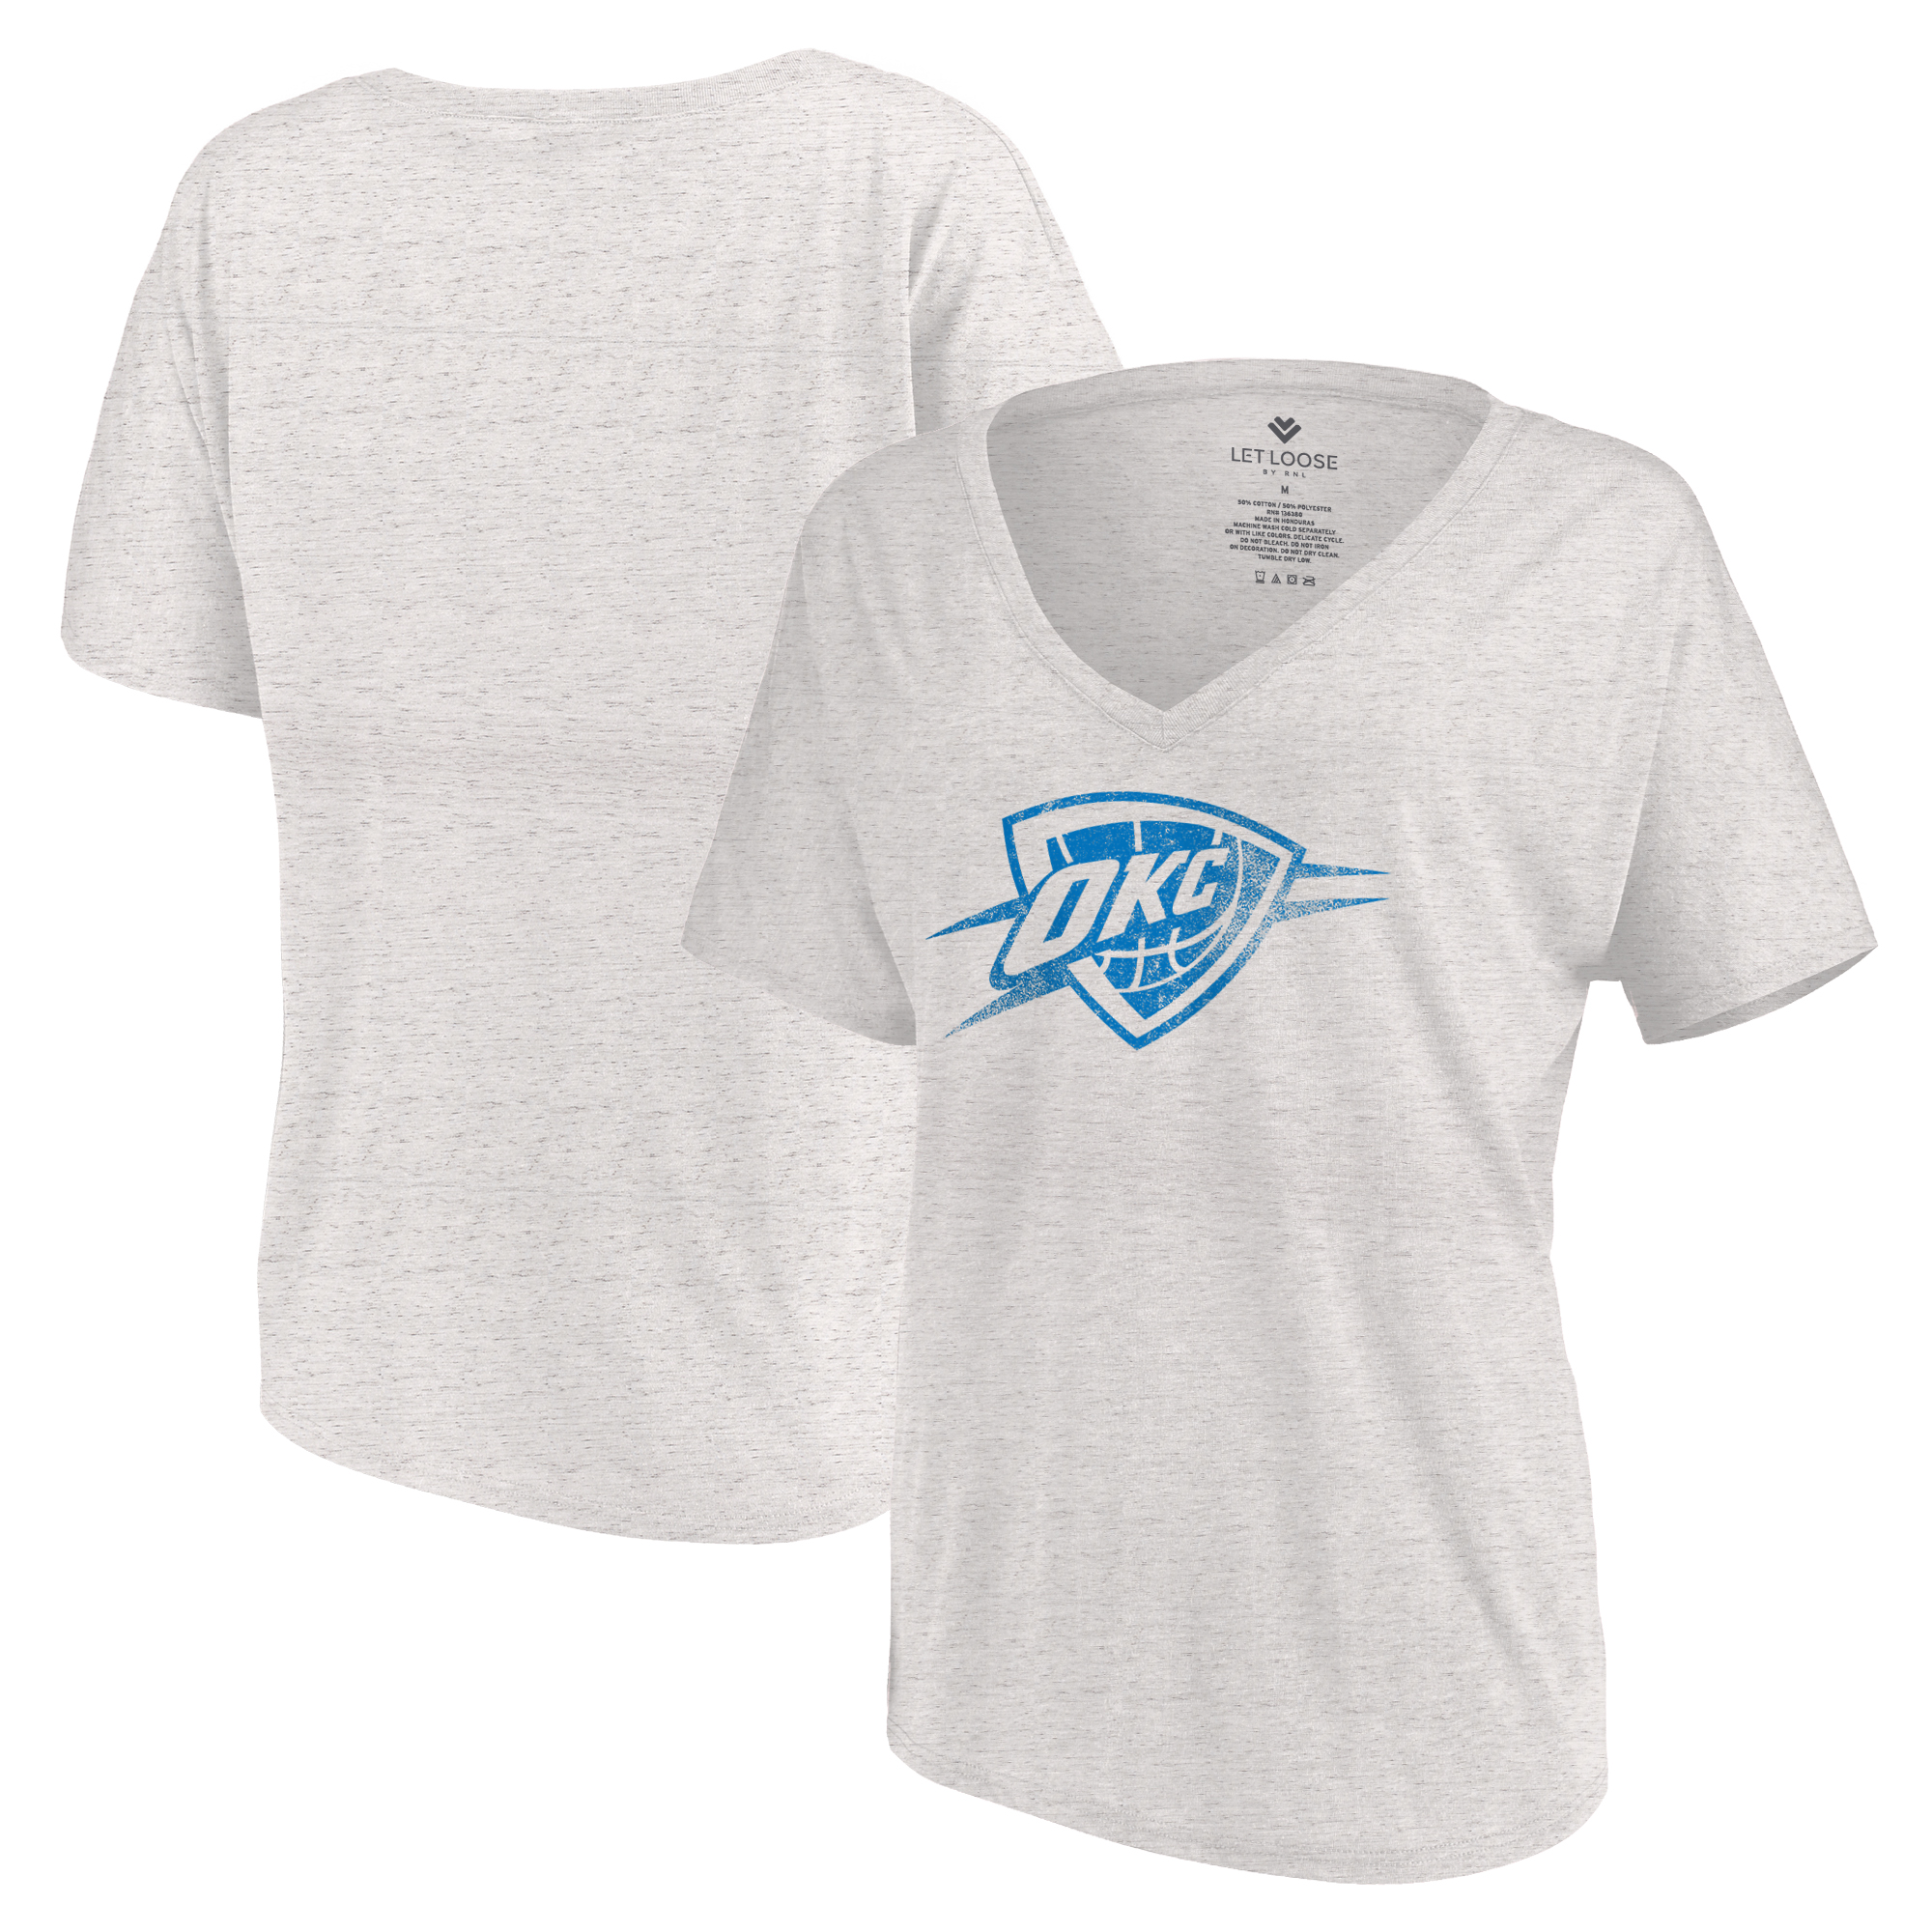 Oklahoma City Thunder Let Loose by RNL Women's Distressed Primary Logo V-Neck T-Shirt - White Marble